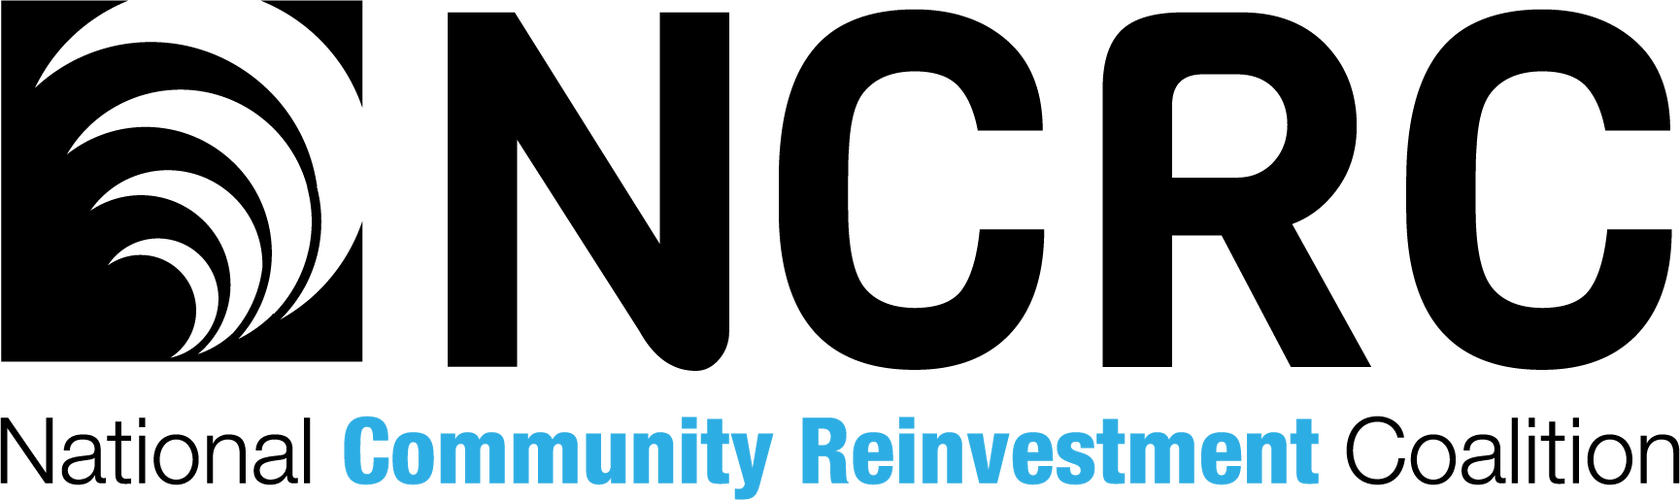 National Community Reinvestment Coalition (NCRC)